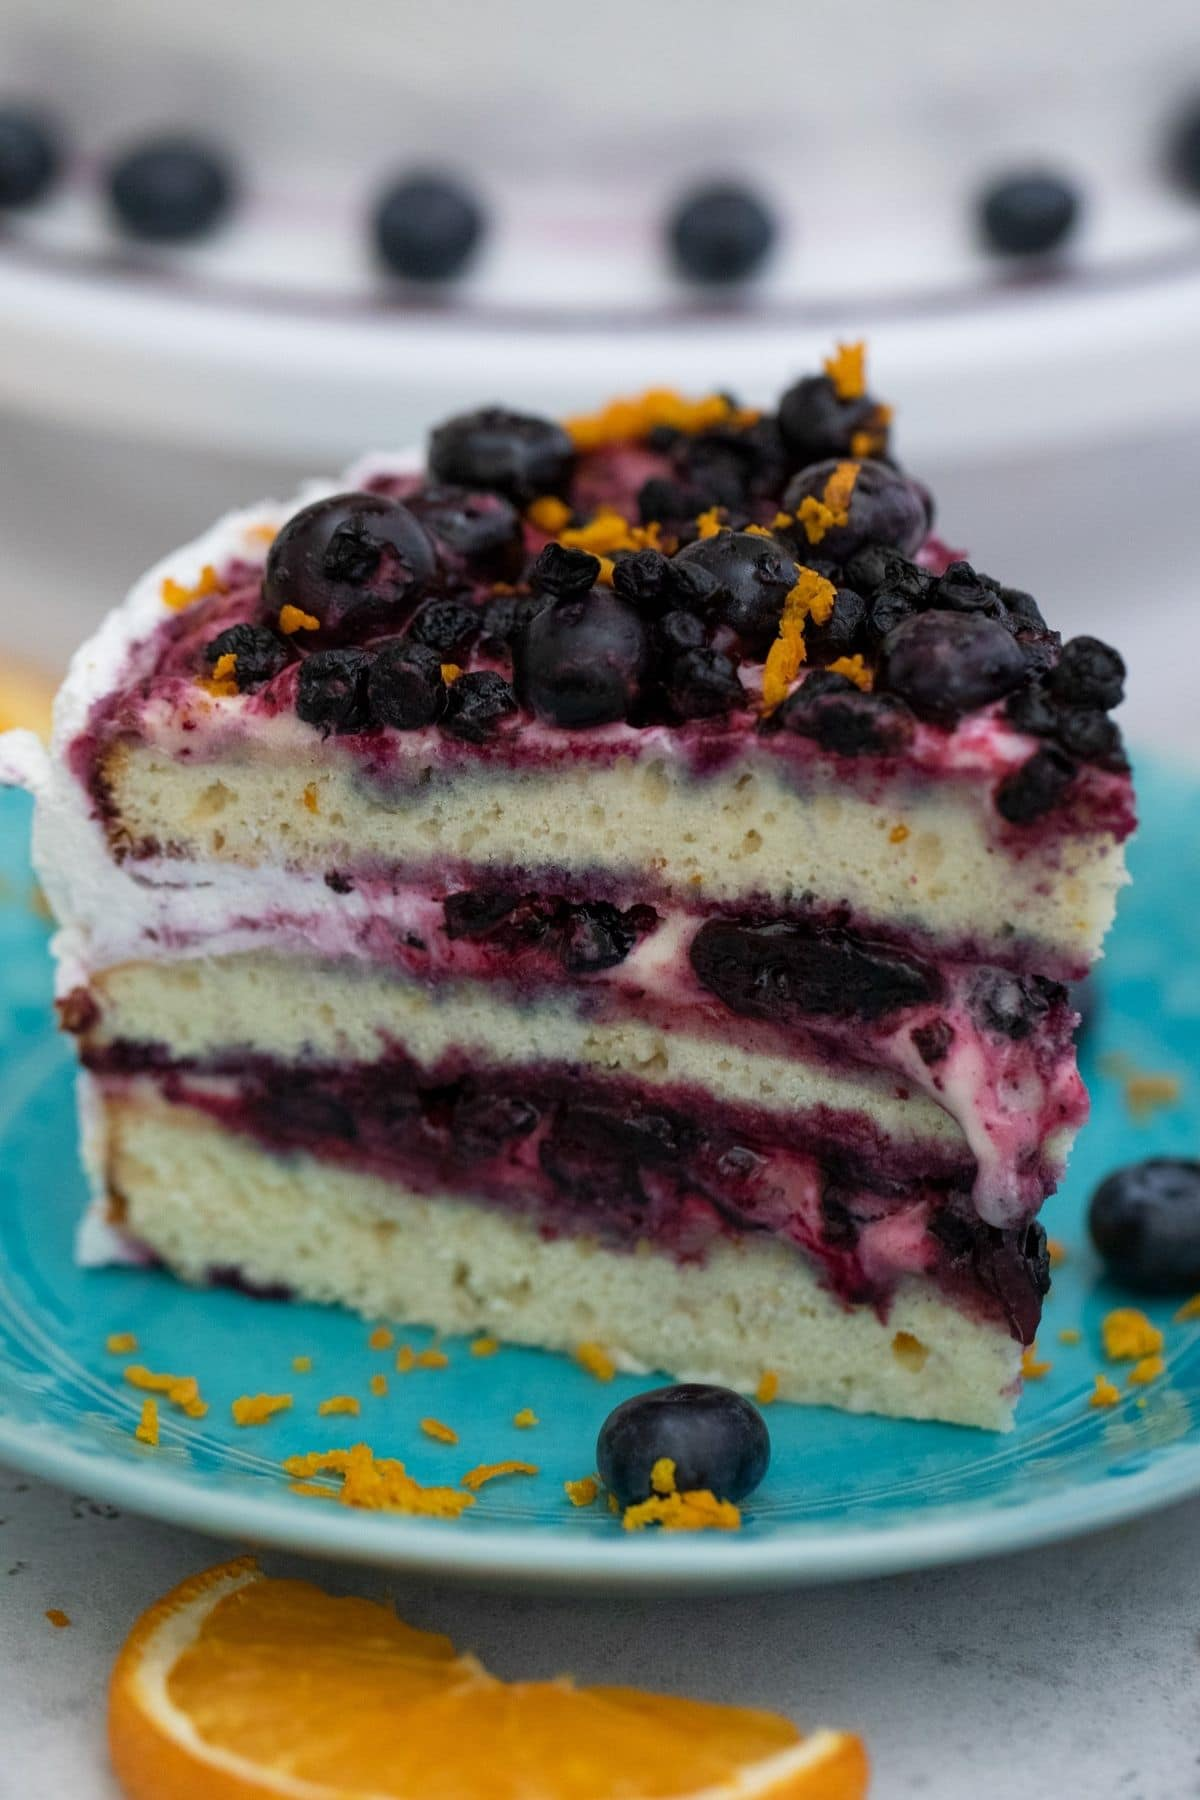 Tall slice of layer cake with berries on teal plate by orange slice